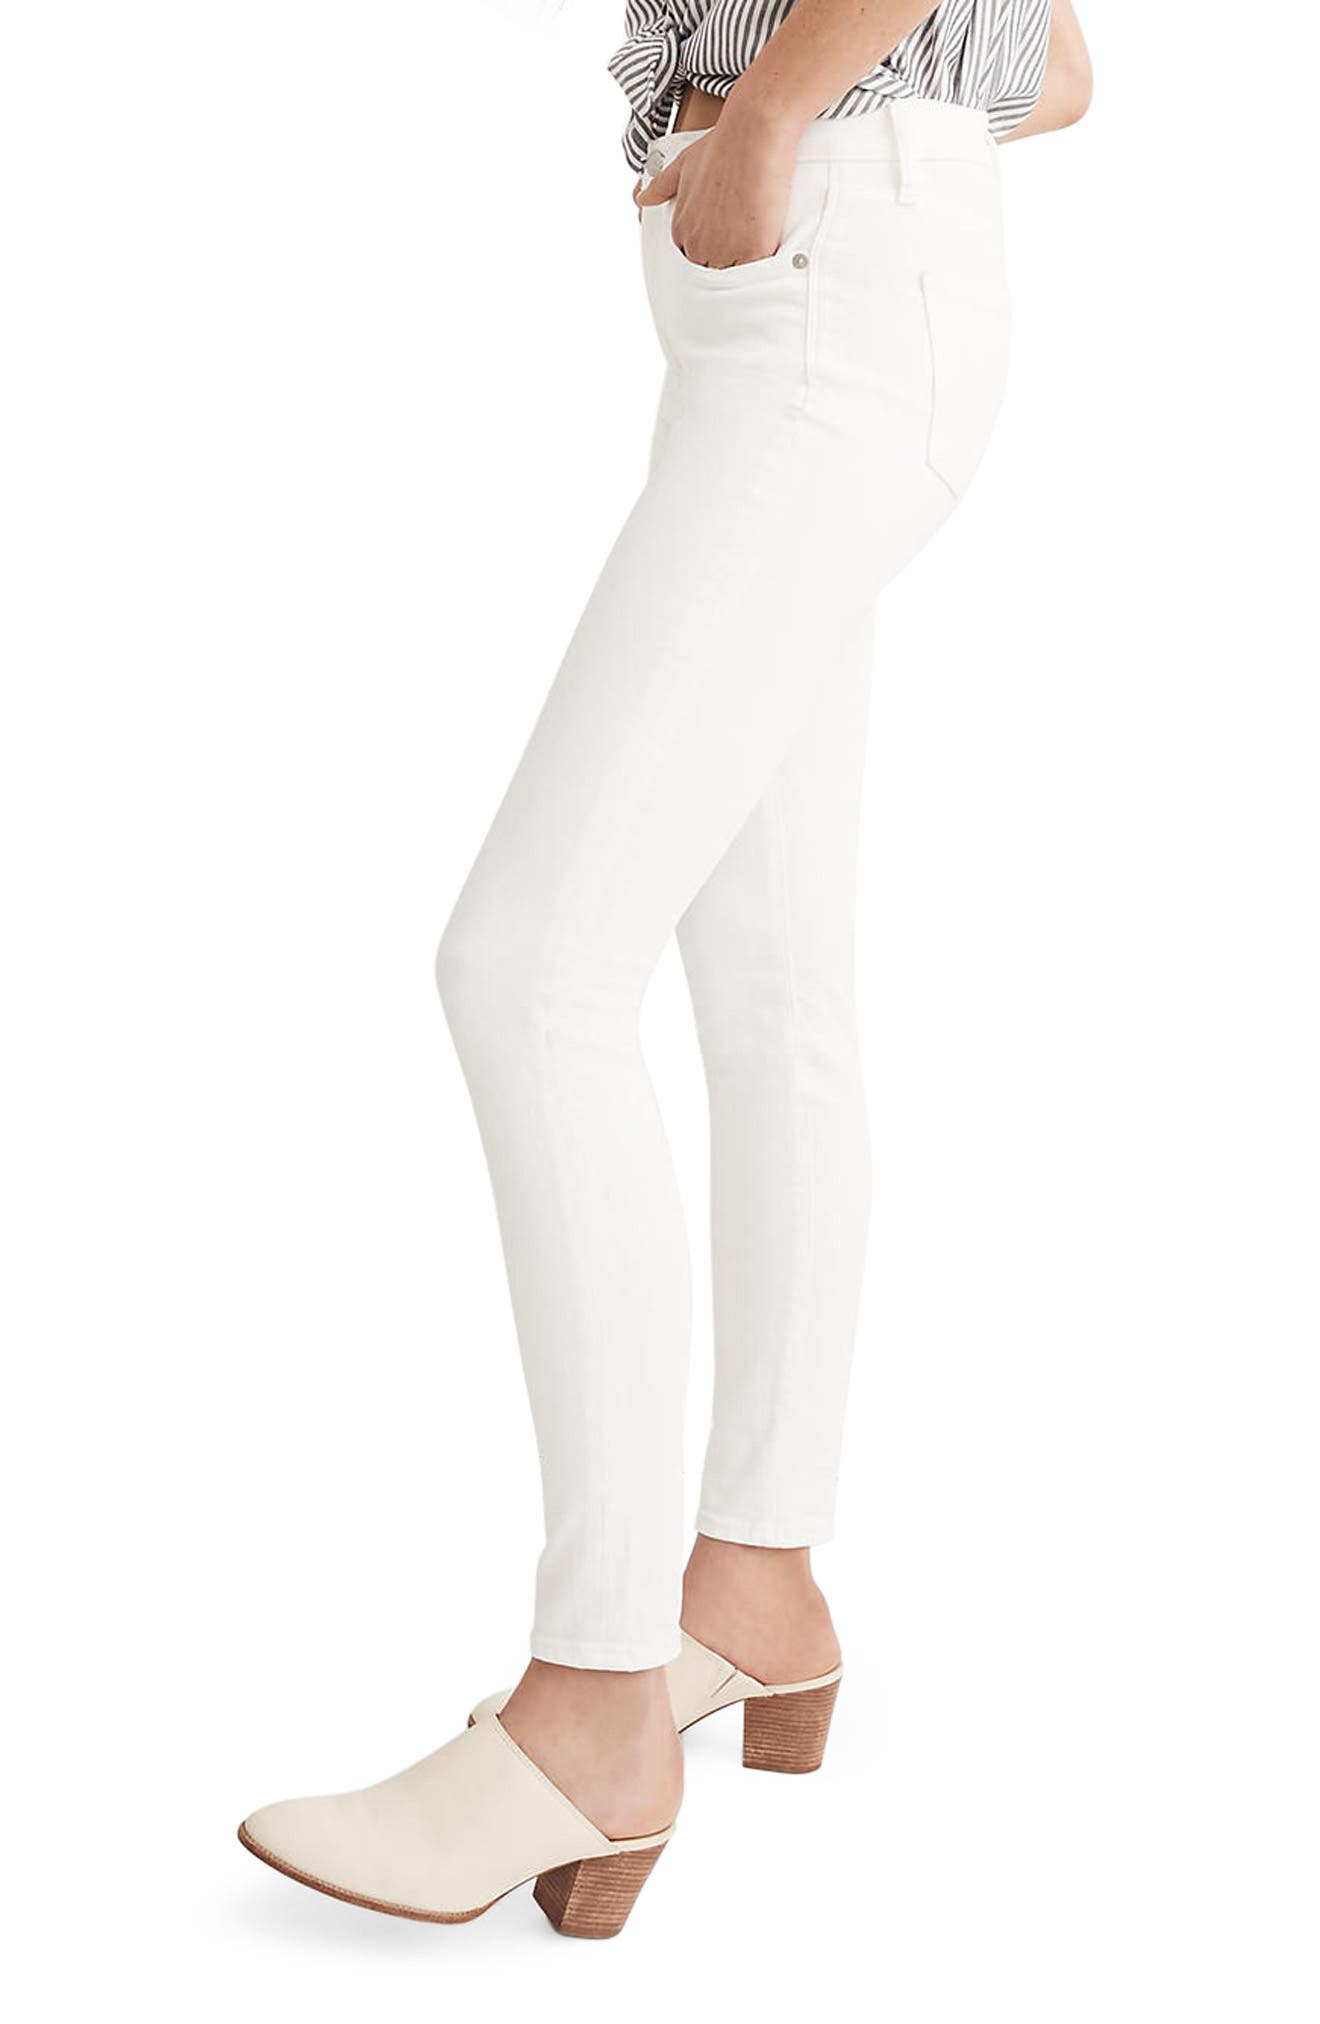 9-Inch High Waist Skinny Jeans,                             Alternate thumbnail 3, color,                             Pure White